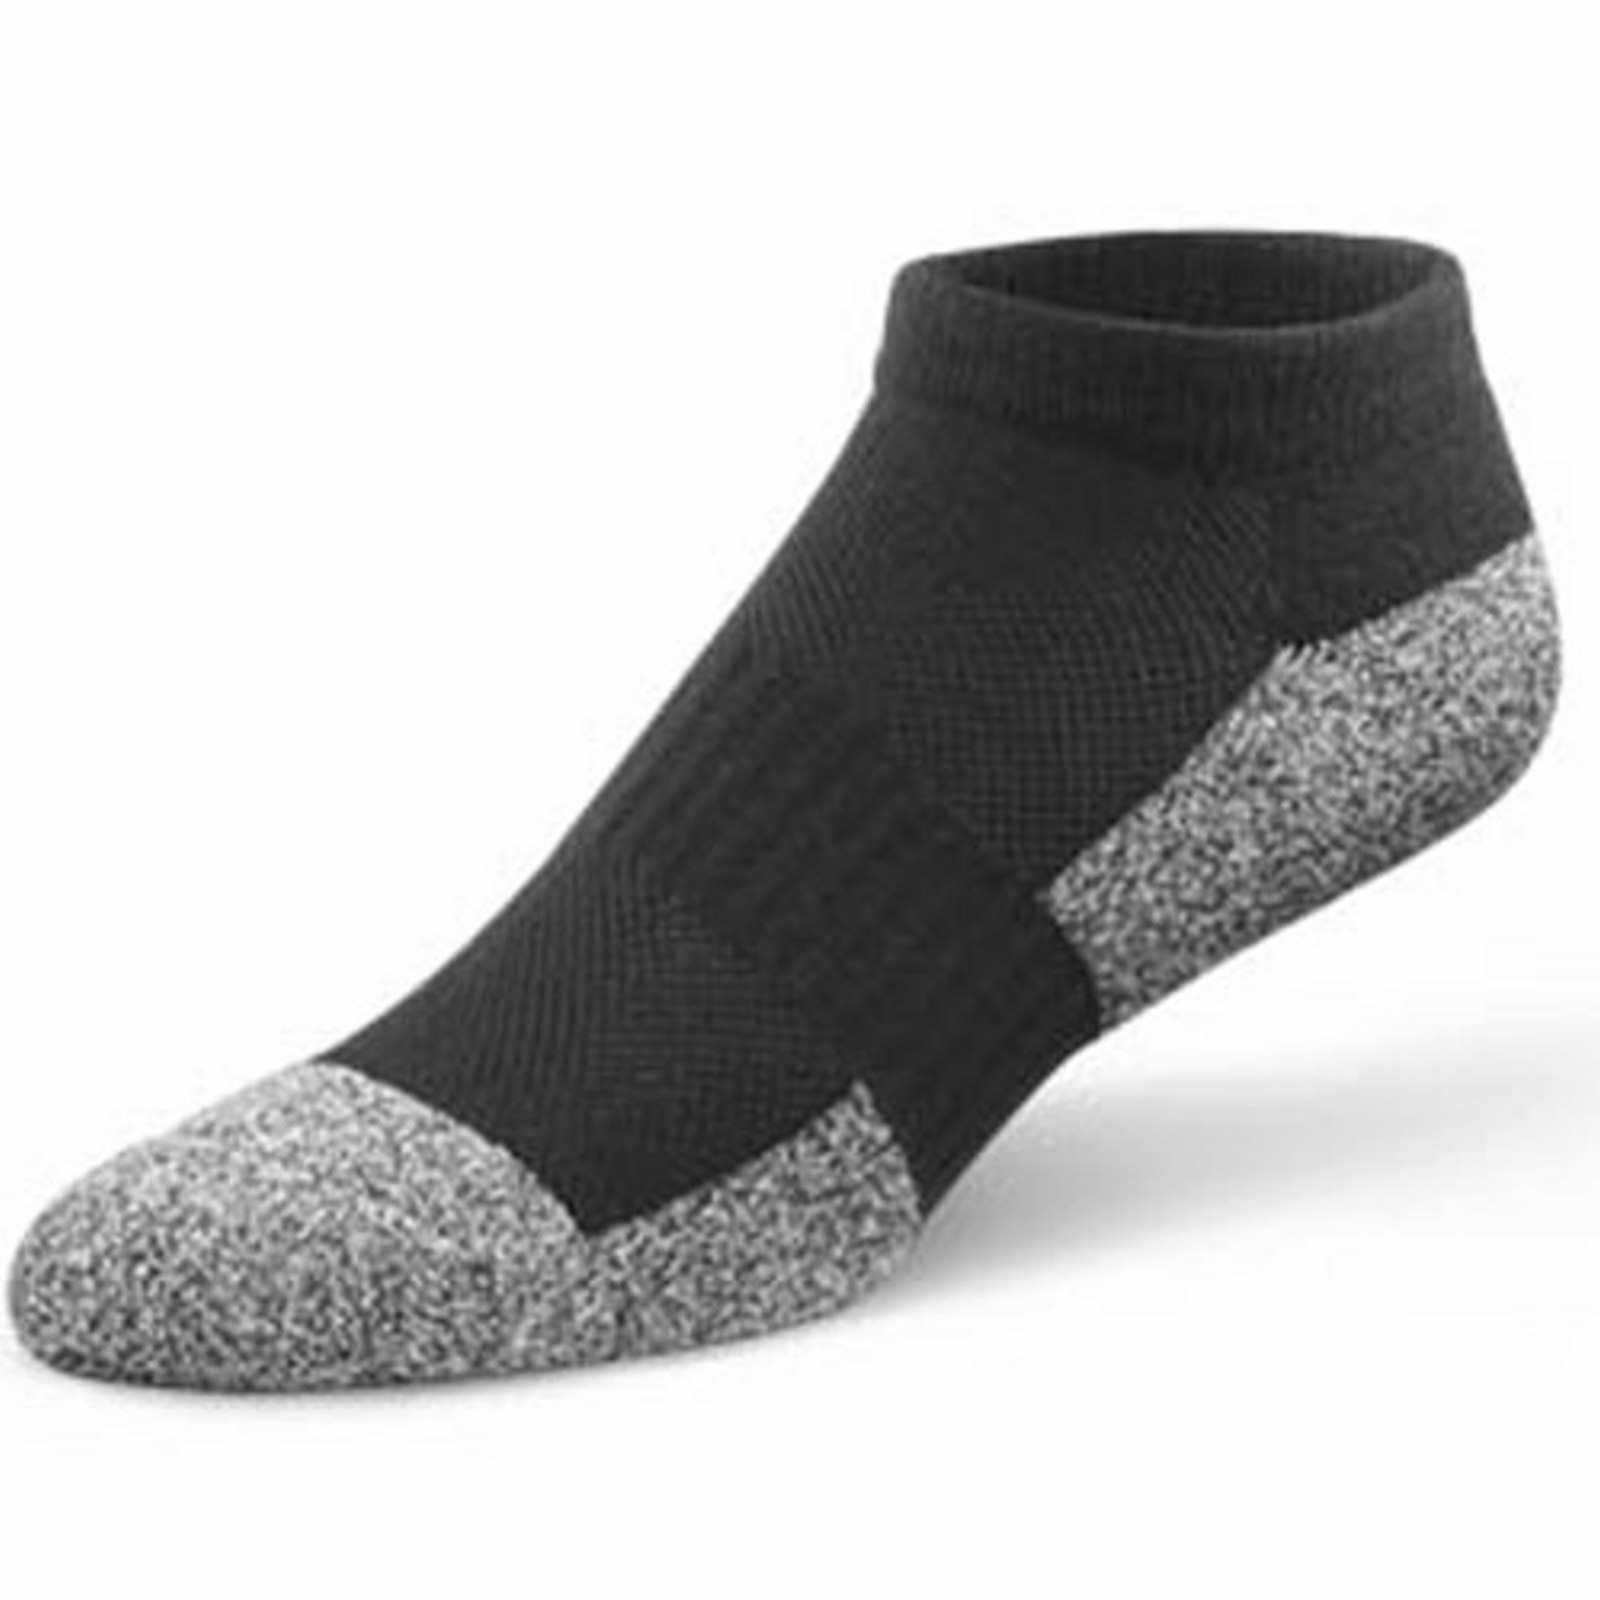 Dr Comfort No-Show Socks (4 Pair) - Men's Therapeutic Diabetic Socks - Athletic, Casual, Dress - X-Small (4) - X-Large (15) at Sears.com